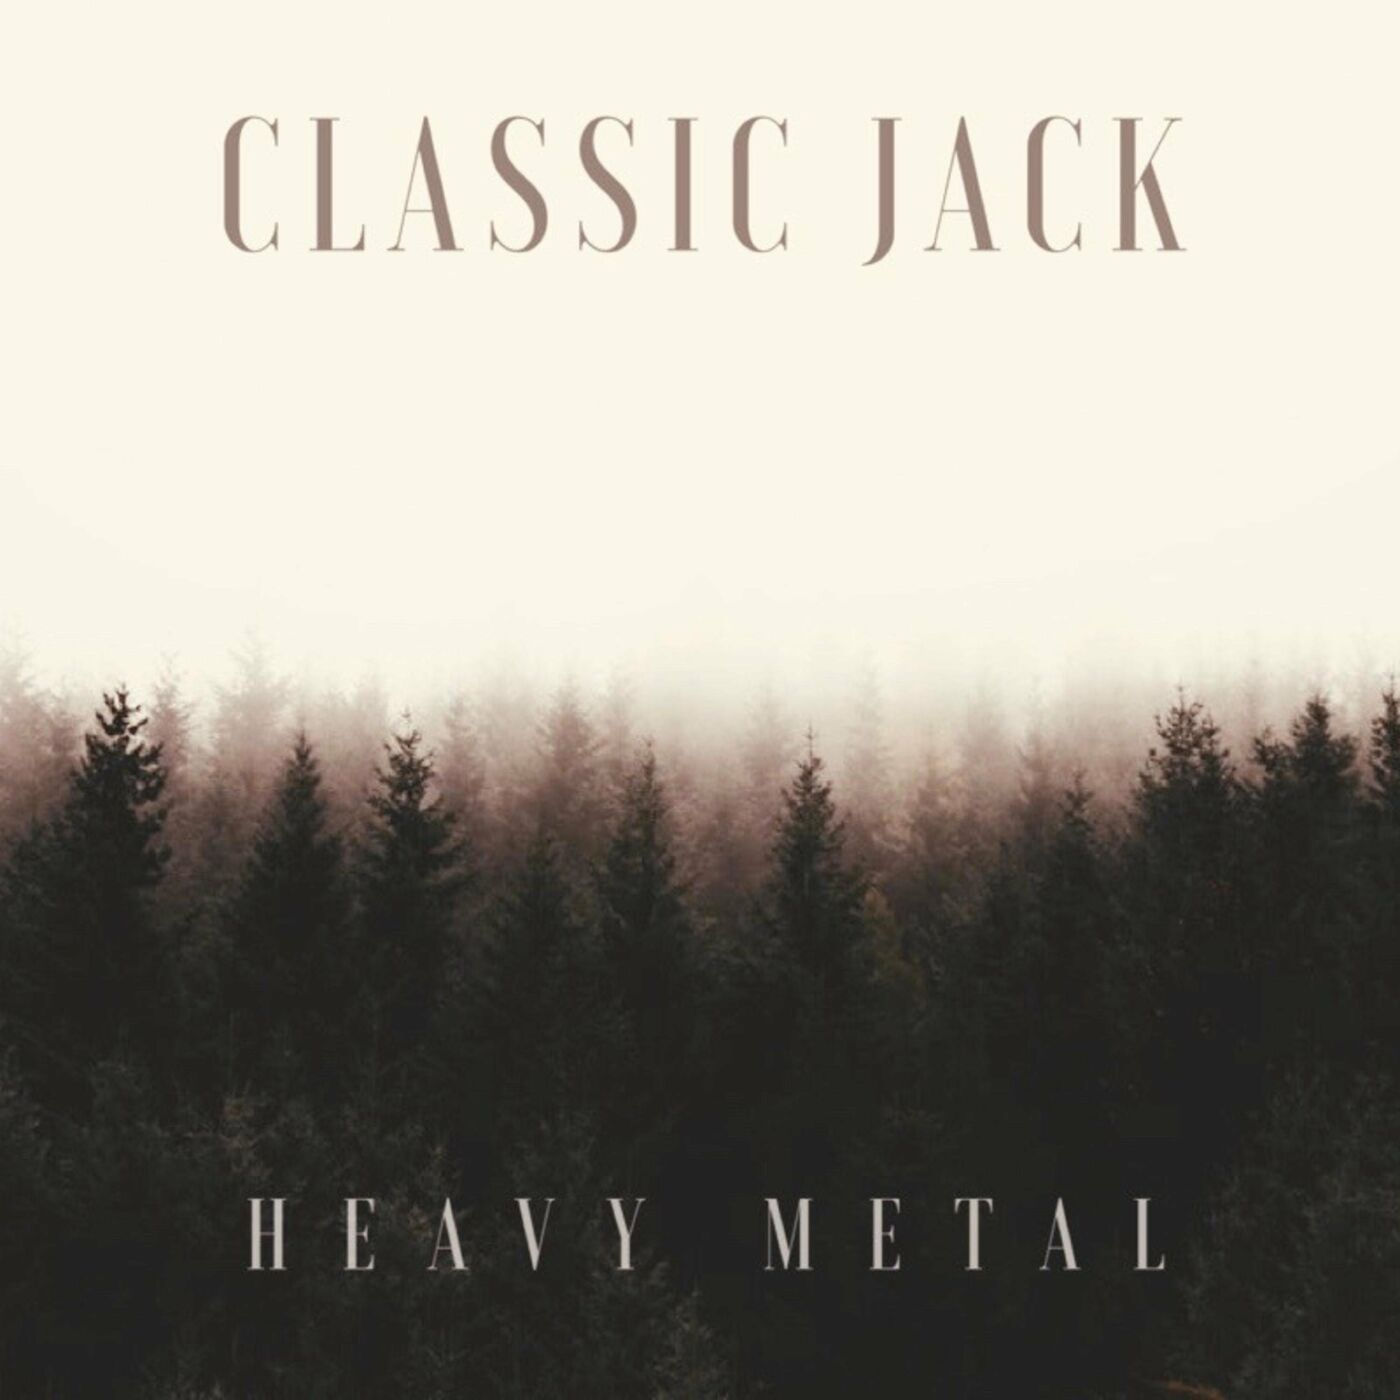 Classic Jack - Heavy Metal [single] (2020)